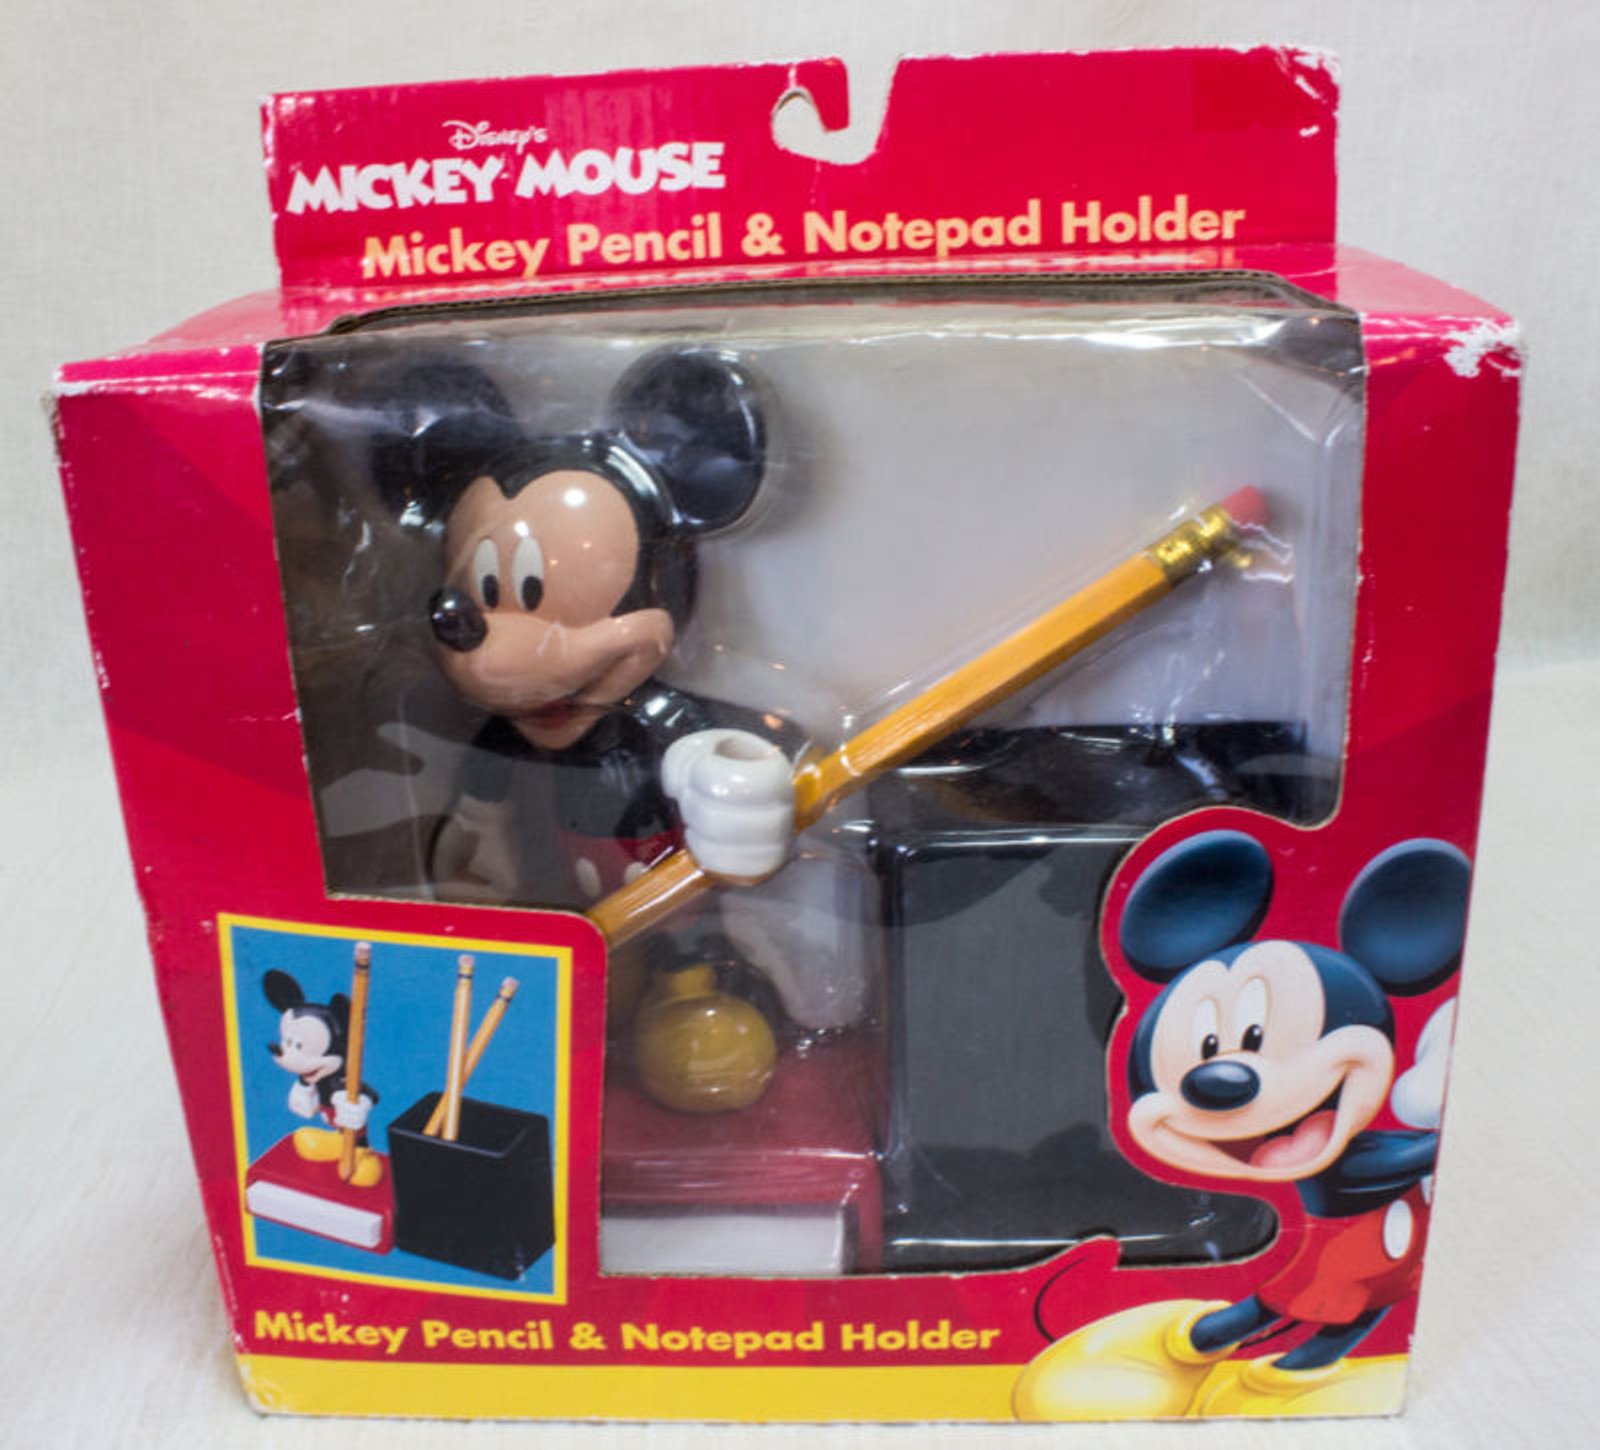 Disney Mickey Mouse Figure Pencil & Notepad Holder Monogram